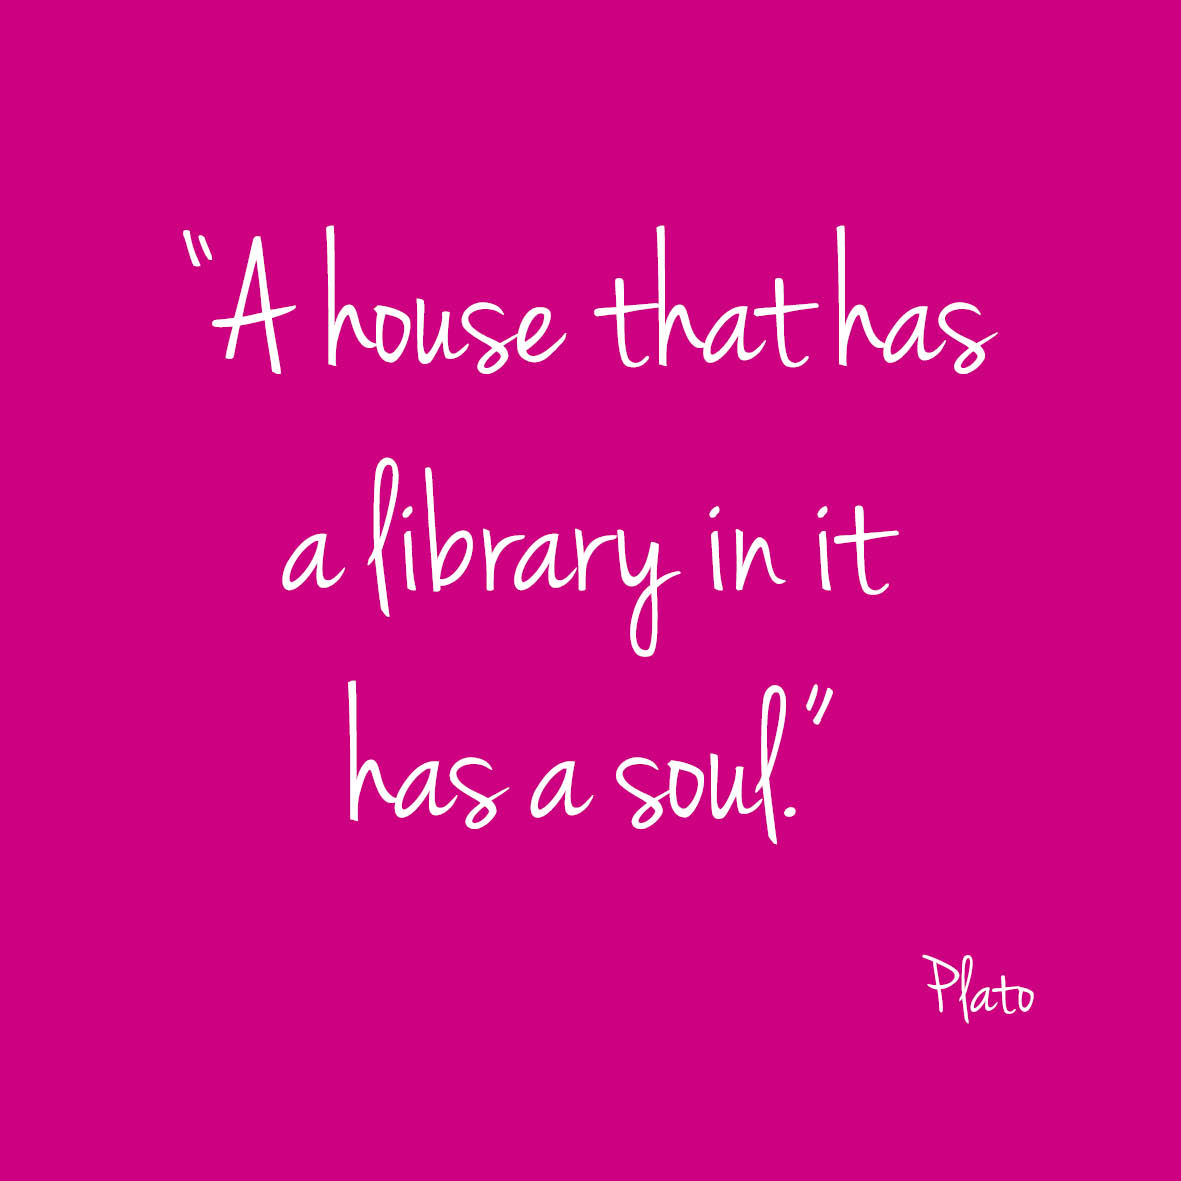 A house that has library in it has a soul | Plato | Bladzijde26.nl